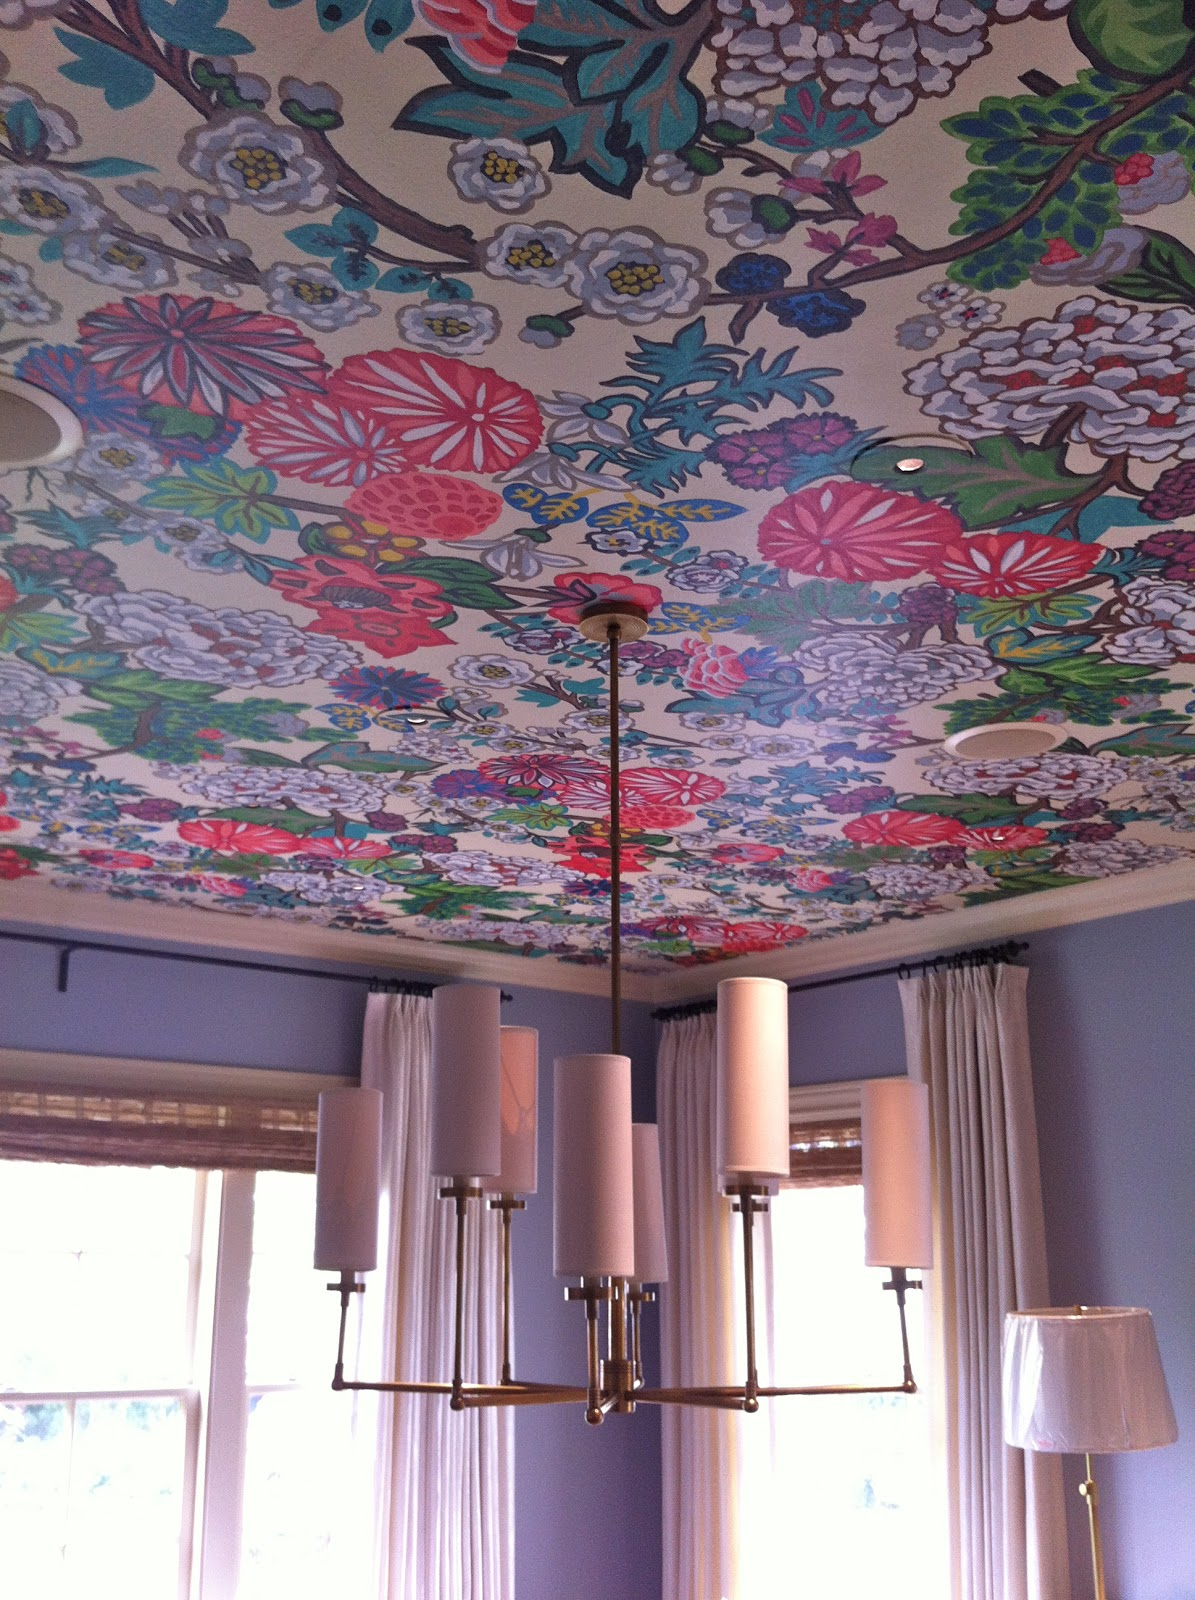 Vivid Hue Home: Ceilings: Why Put a 'Lid' On Them?!